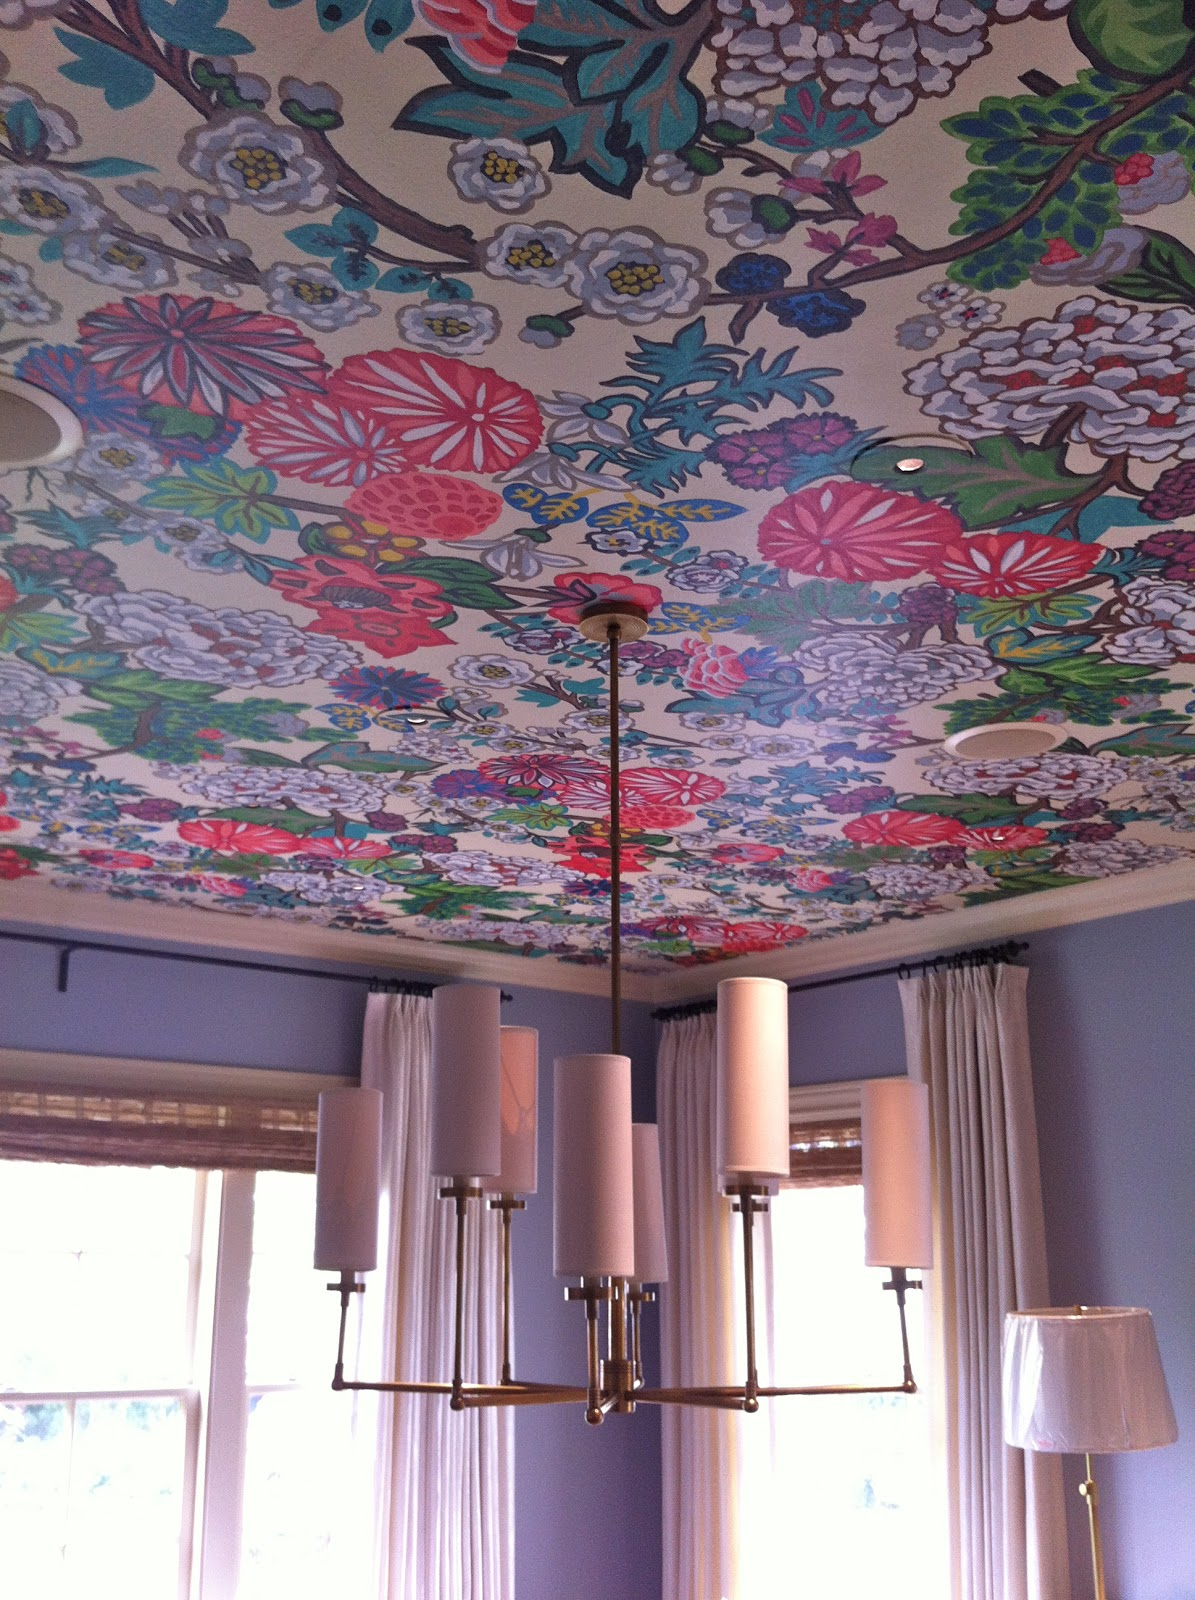 Vivid Hue Home: Ceilings: Why Put a 'Lid' On Them?!